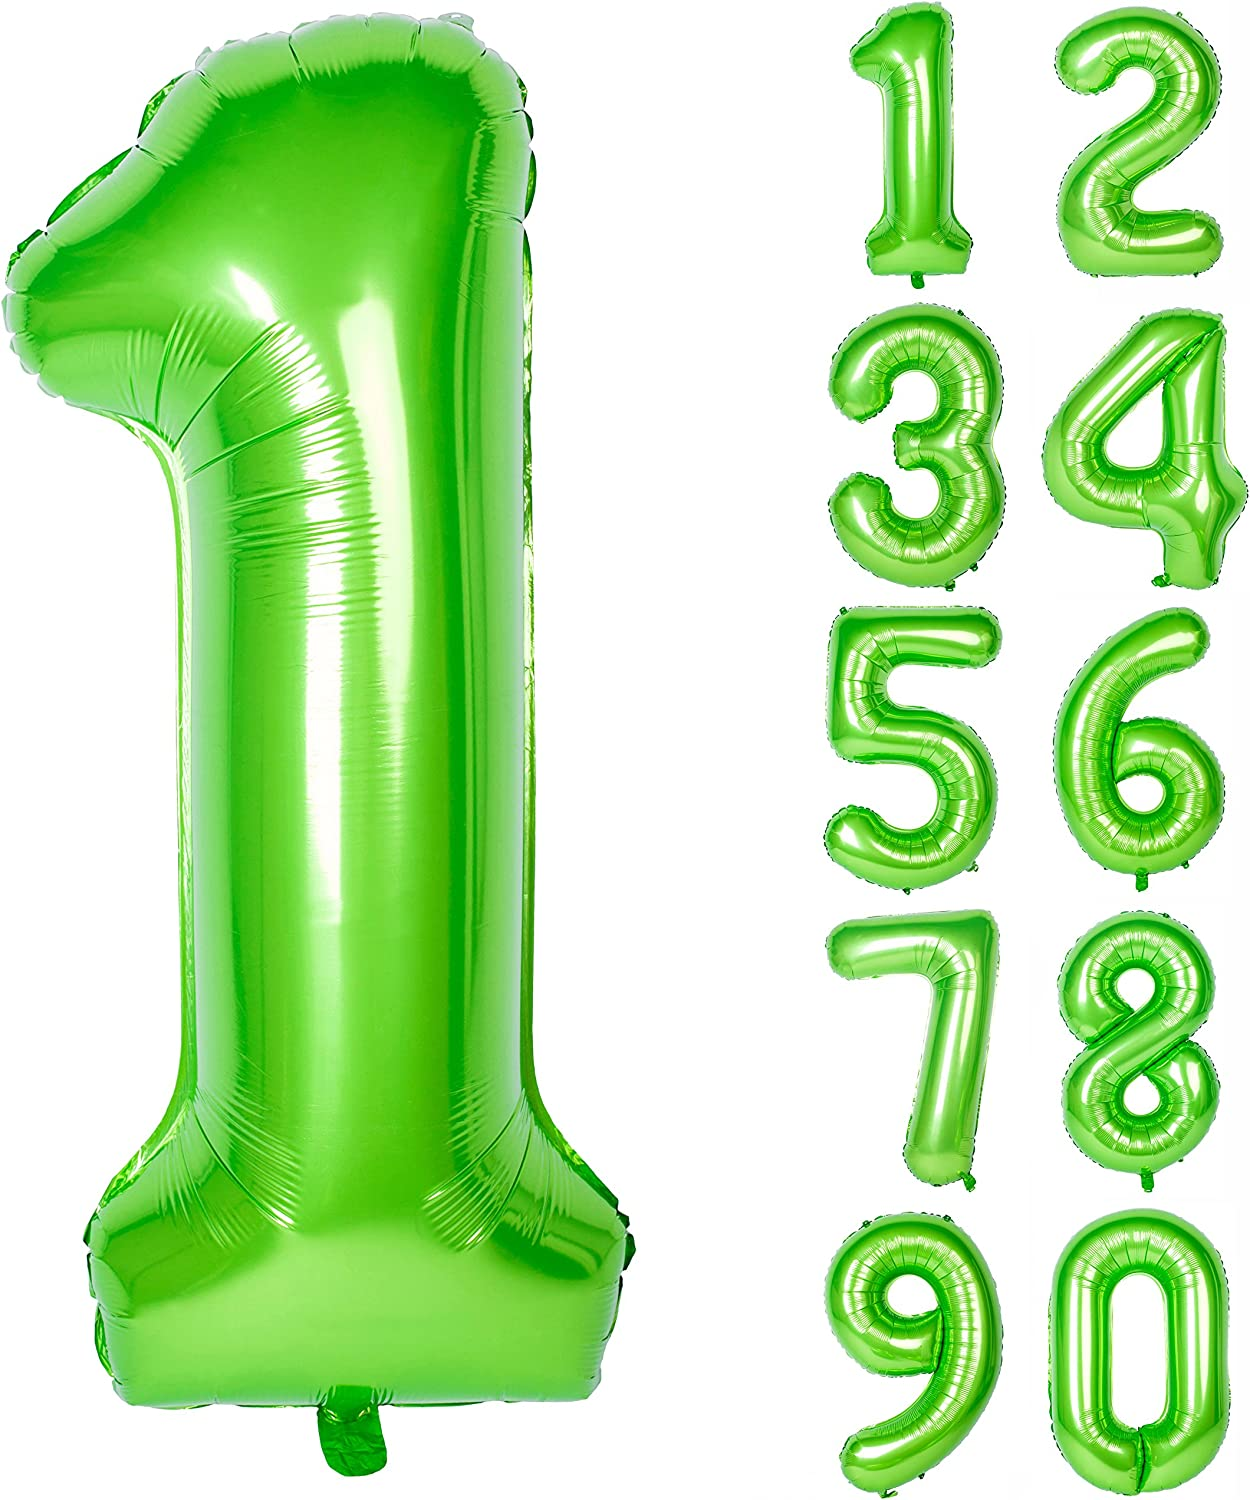 40 Inch Green Large Numbers 0-9 Birthday Party Decorations Helium Foil Mylar Big Number Balloon Digital 1